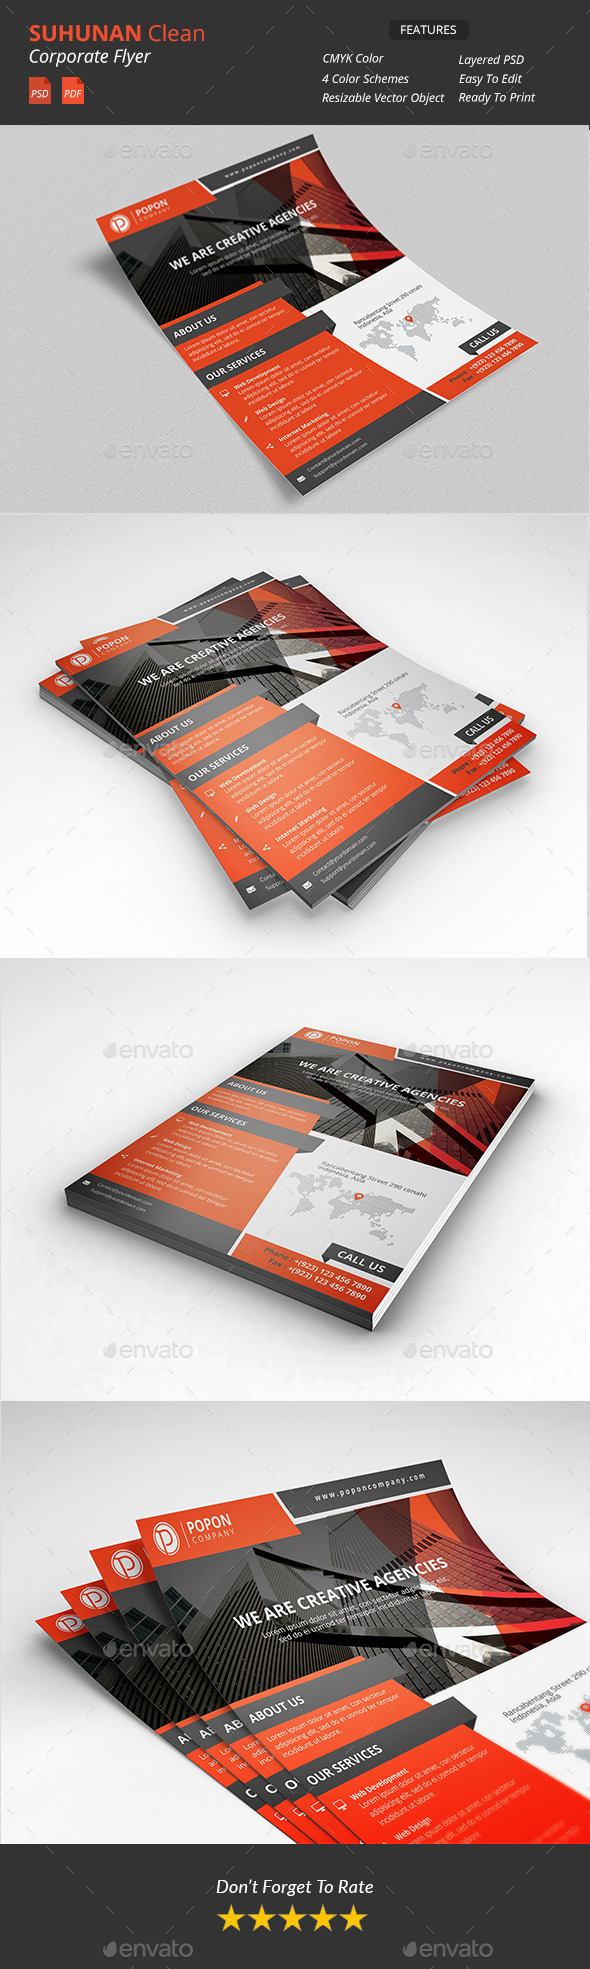 GraphicRiver Suhunan Clean Corporate Flyer 10739084